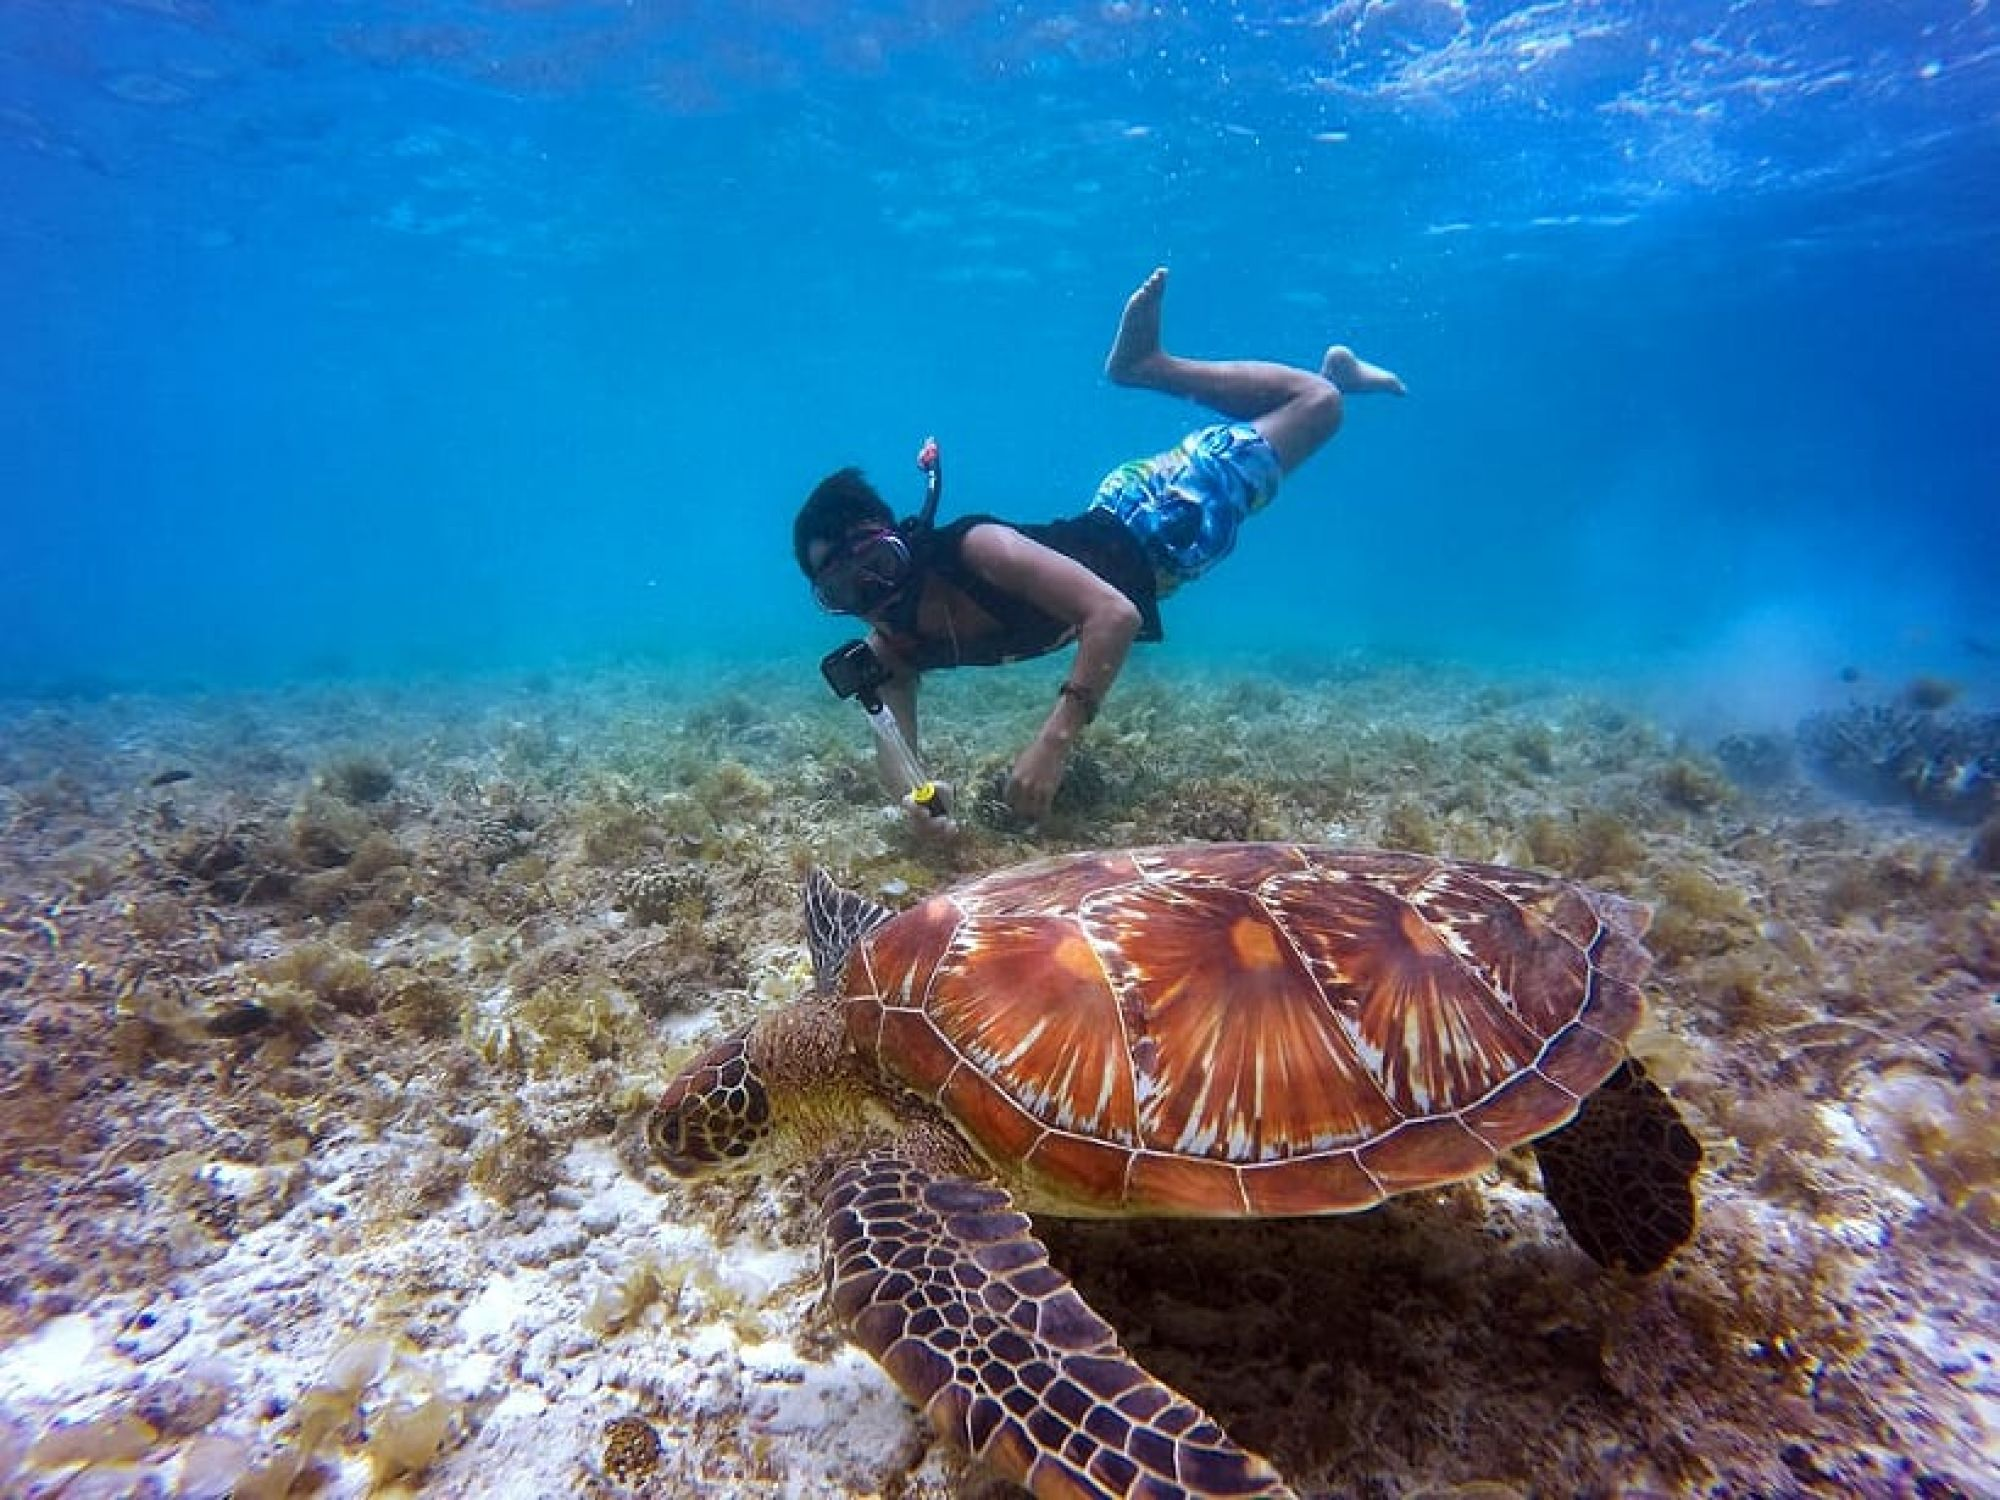 Snorkelling in Australia - Live an Exciting Experience